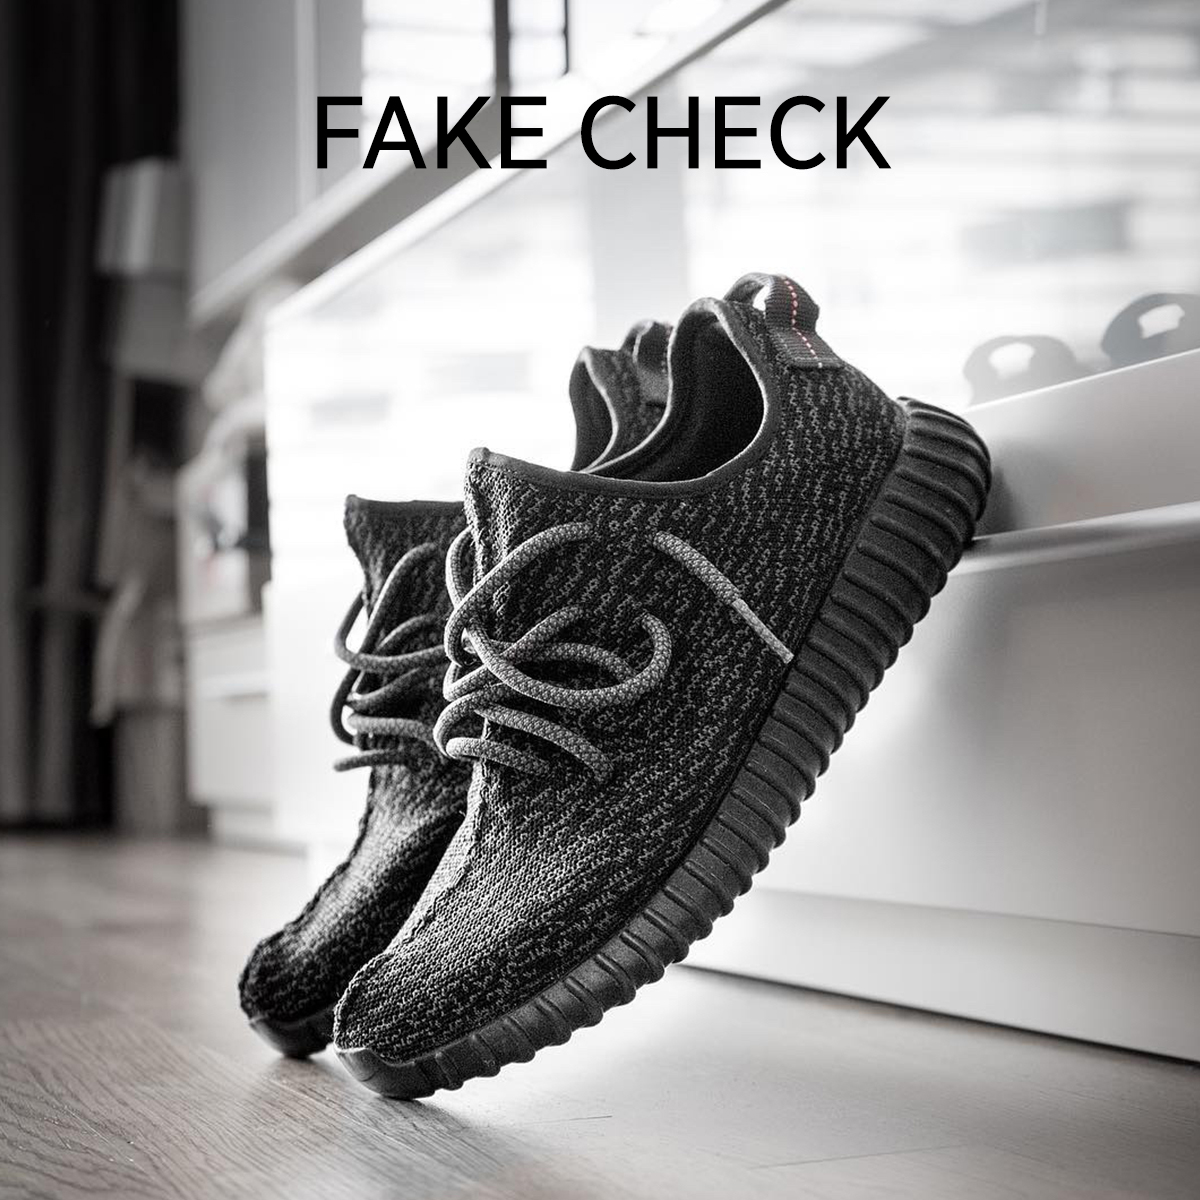 63e90710e Adidas Originals Yeezy Boost 350 Pirate Black Fake Check Klekt